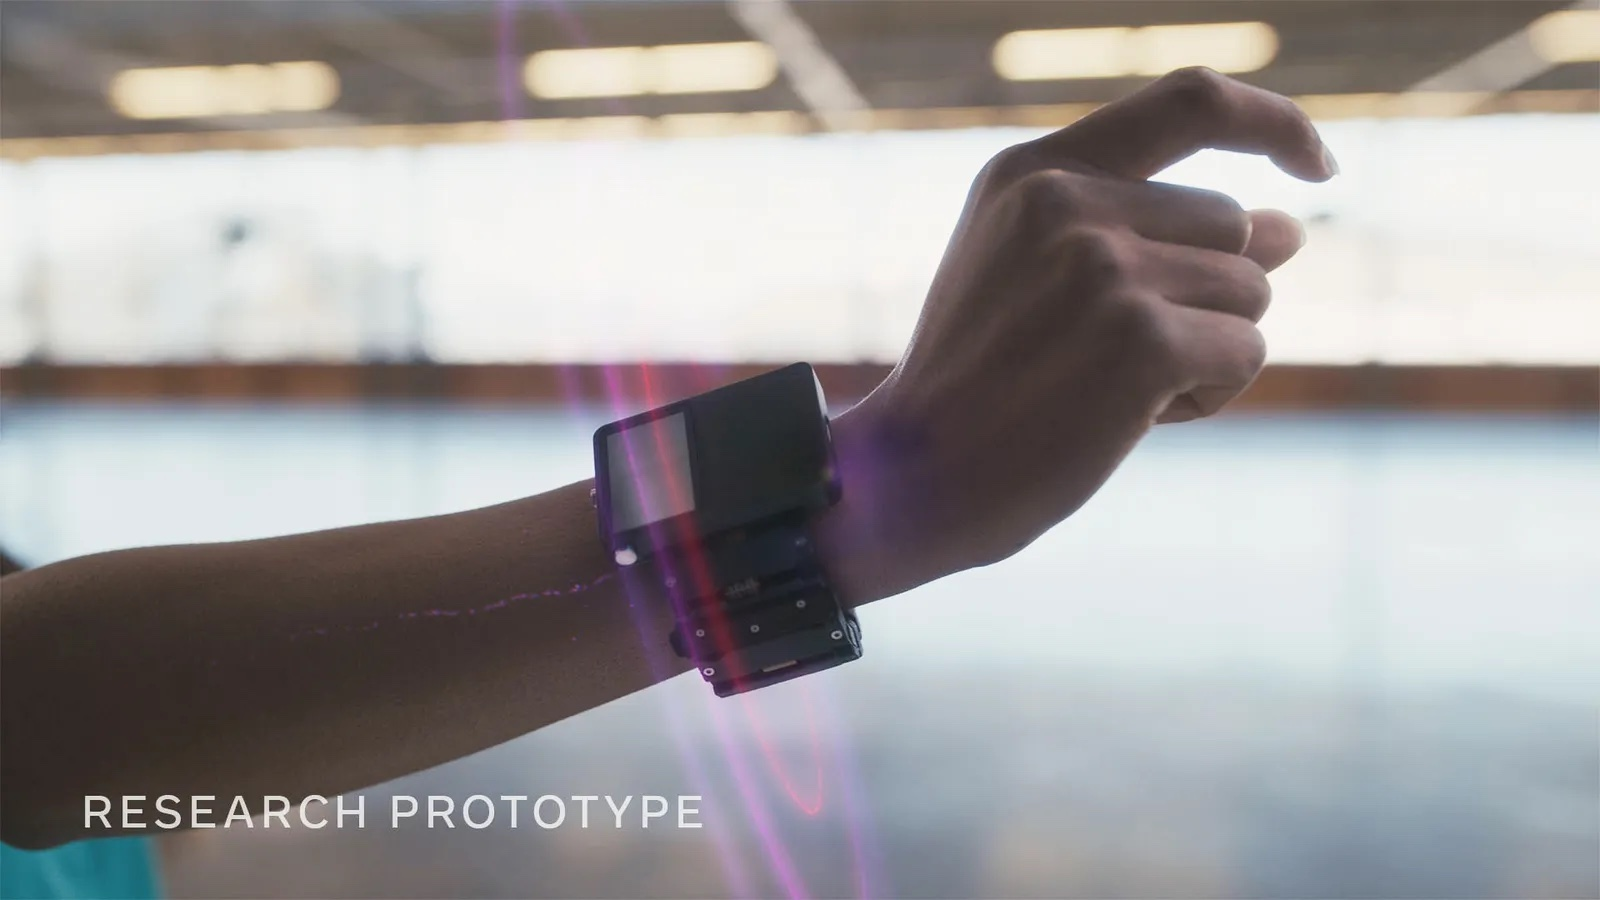 A closer look at the prototype wearable.